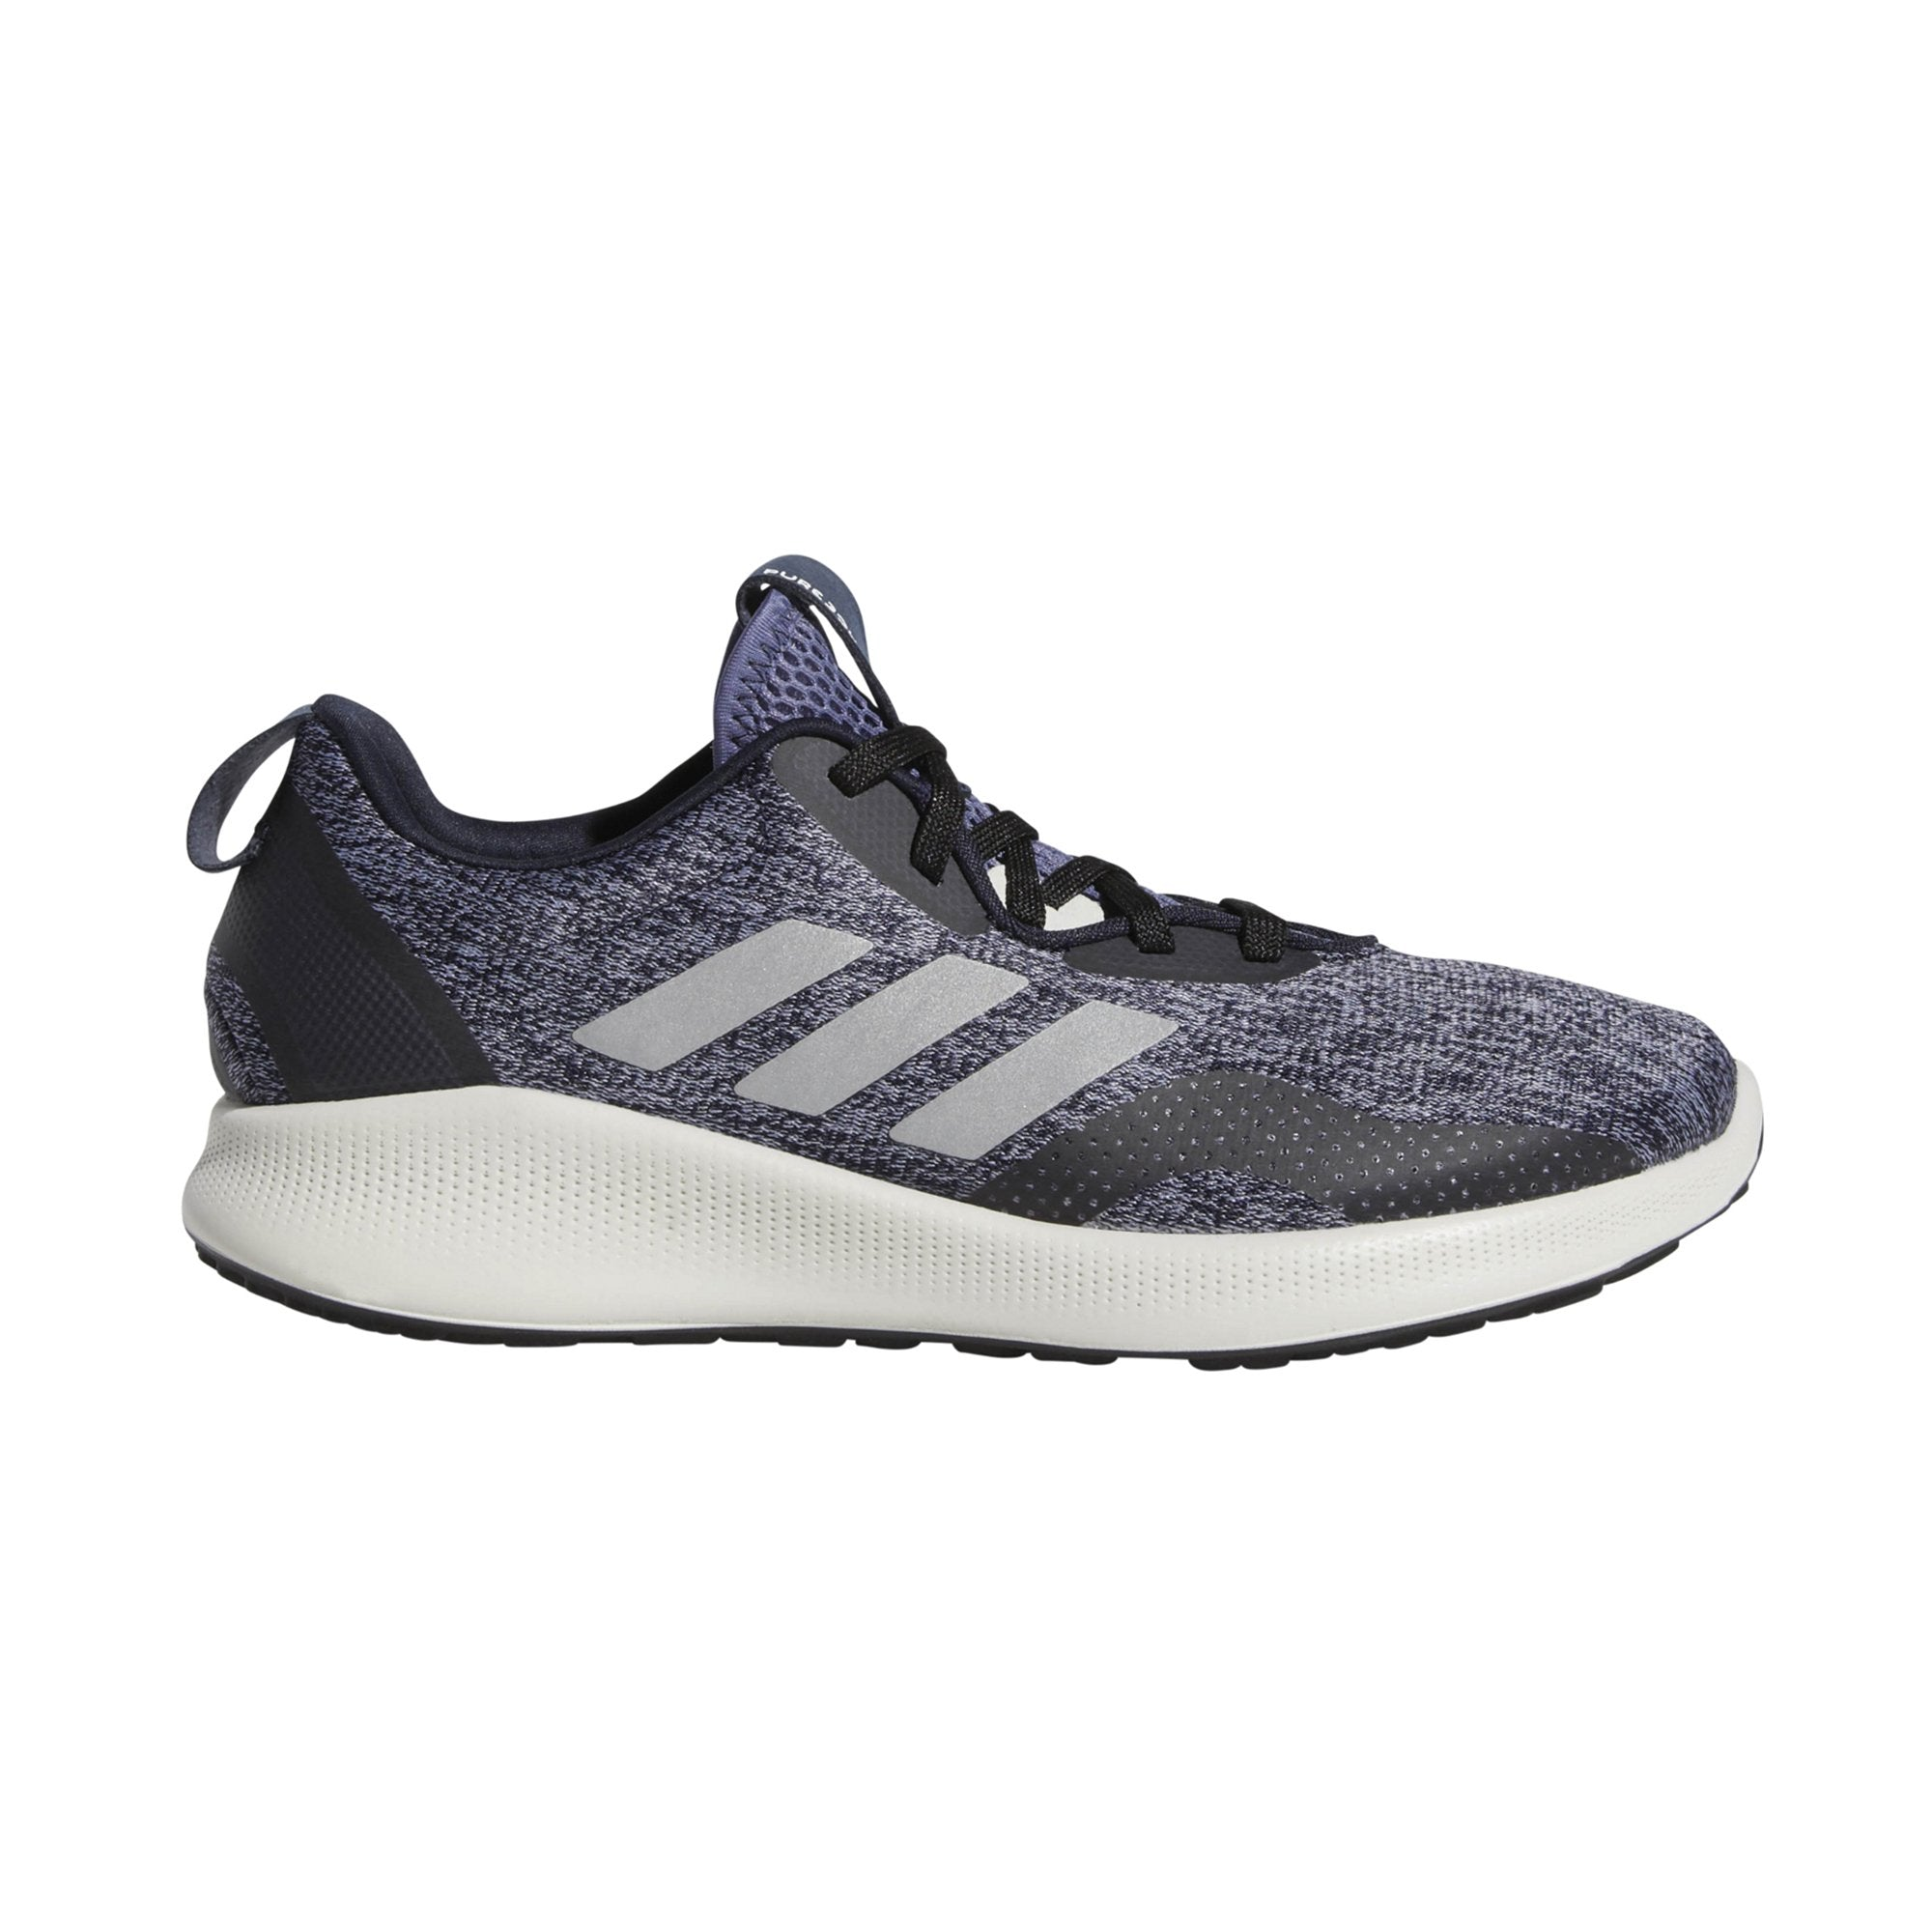 a4d147608d adidas Shoes & Sportswear Online in Singapore | Royal Sporting House